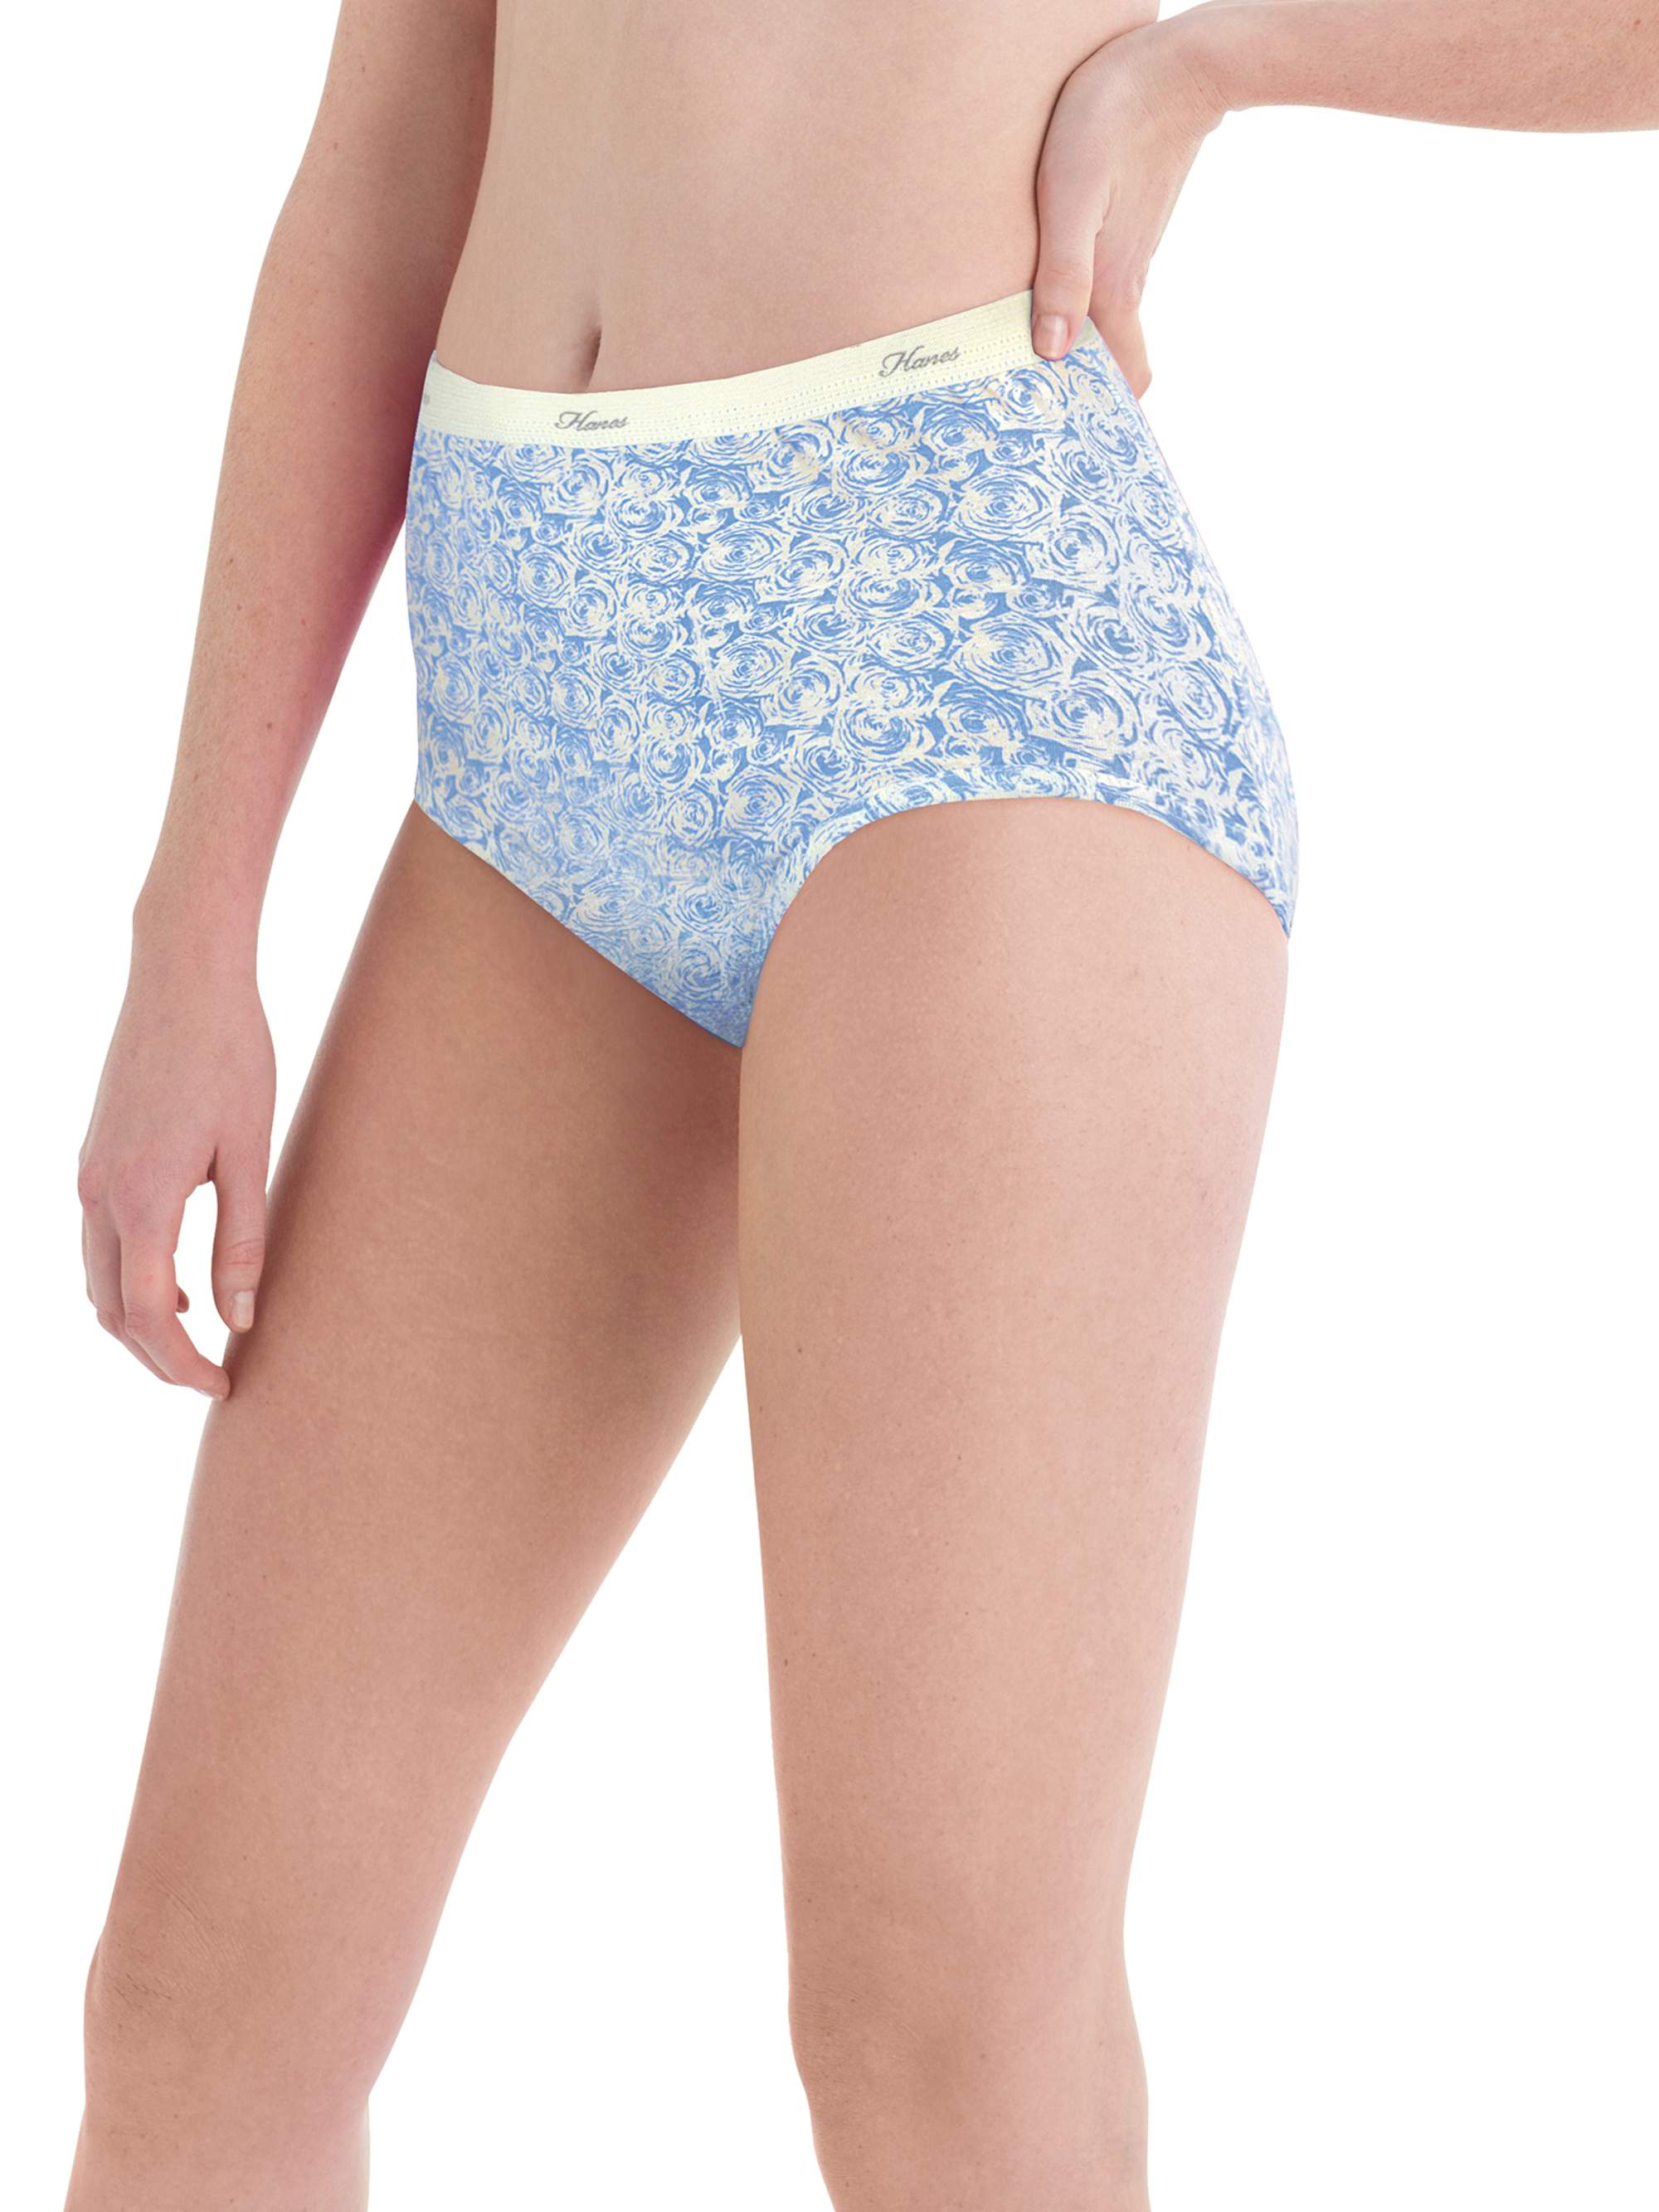 HBselect 6 Pack Ladies Underwear High Waist Full Cotton Briefs Knickers for Womens Multipack